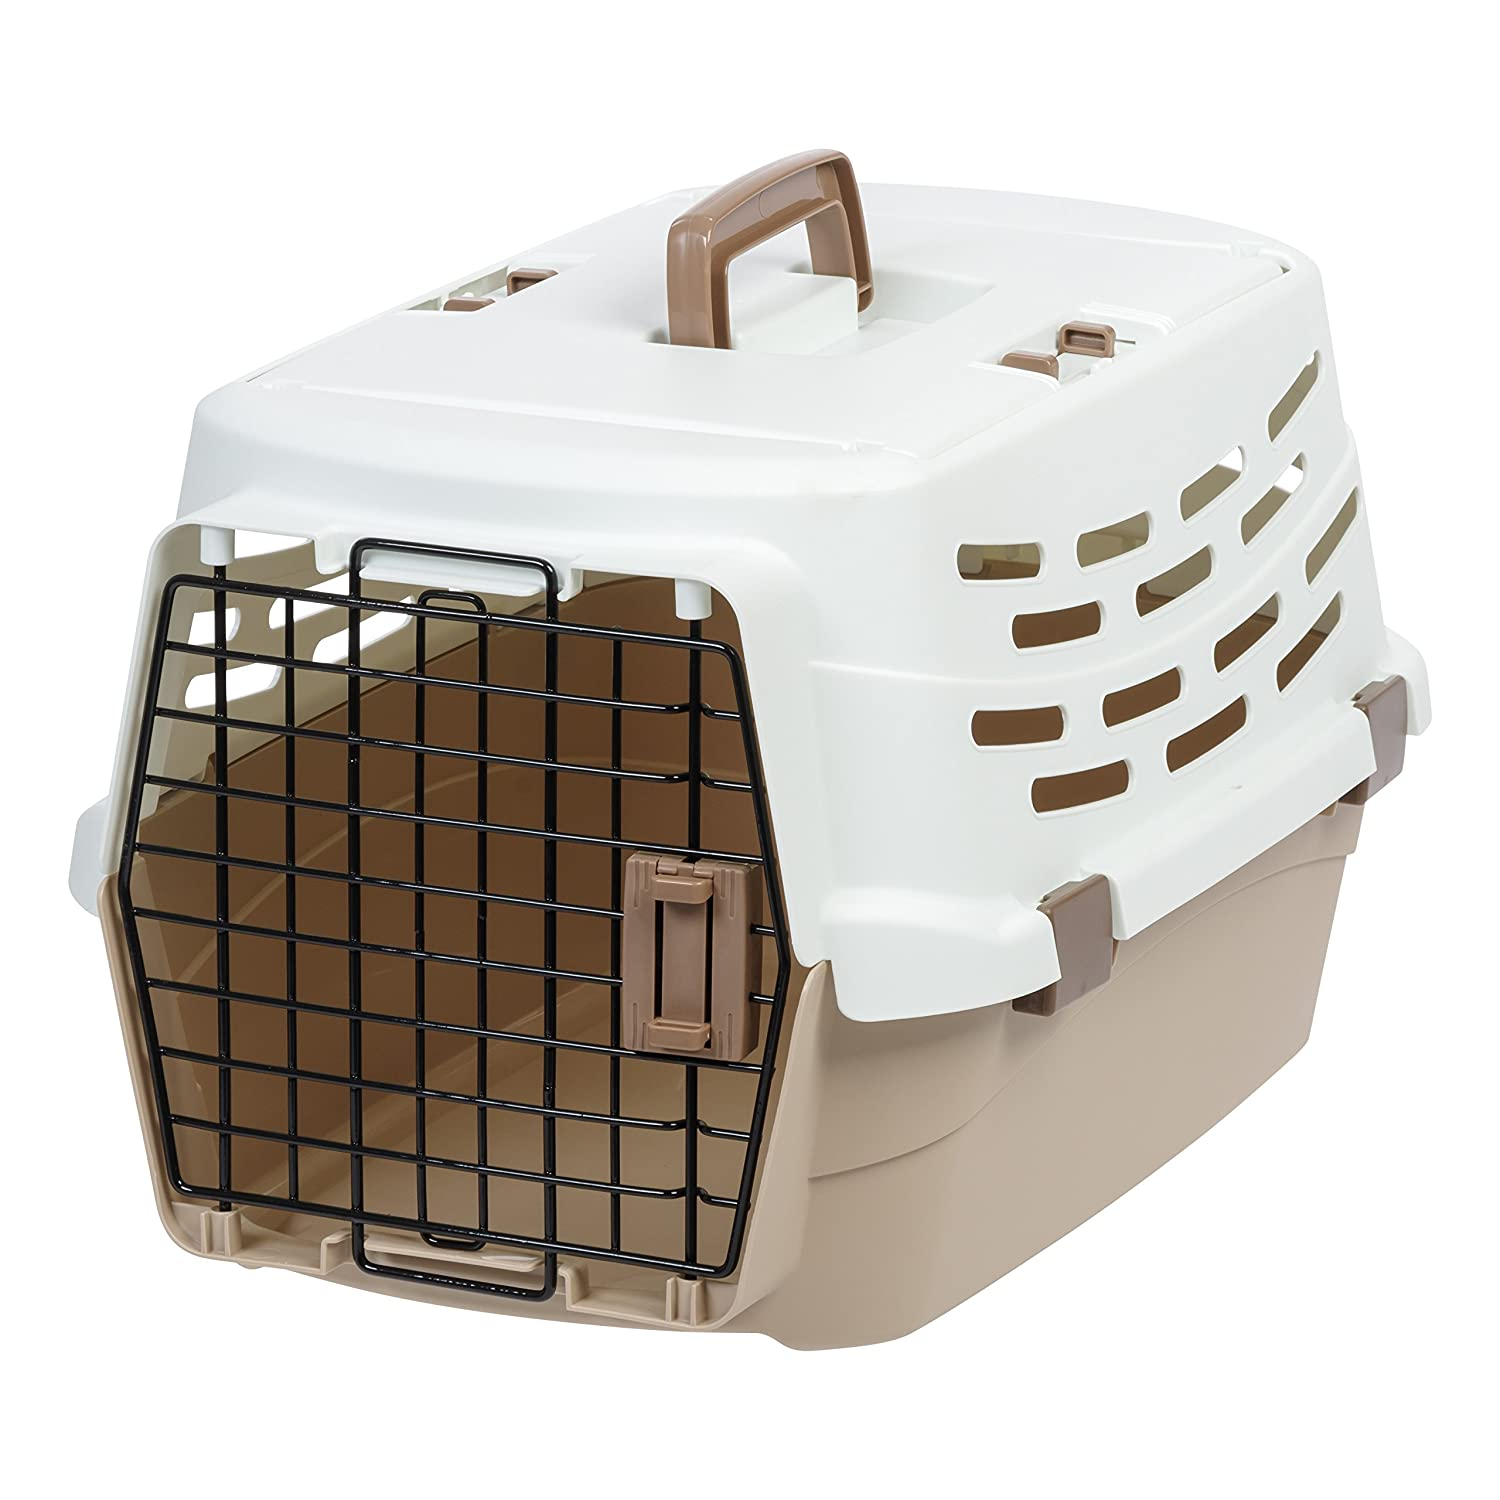 IRIS USA Easy Access Pet Travel Carrier with two access doors